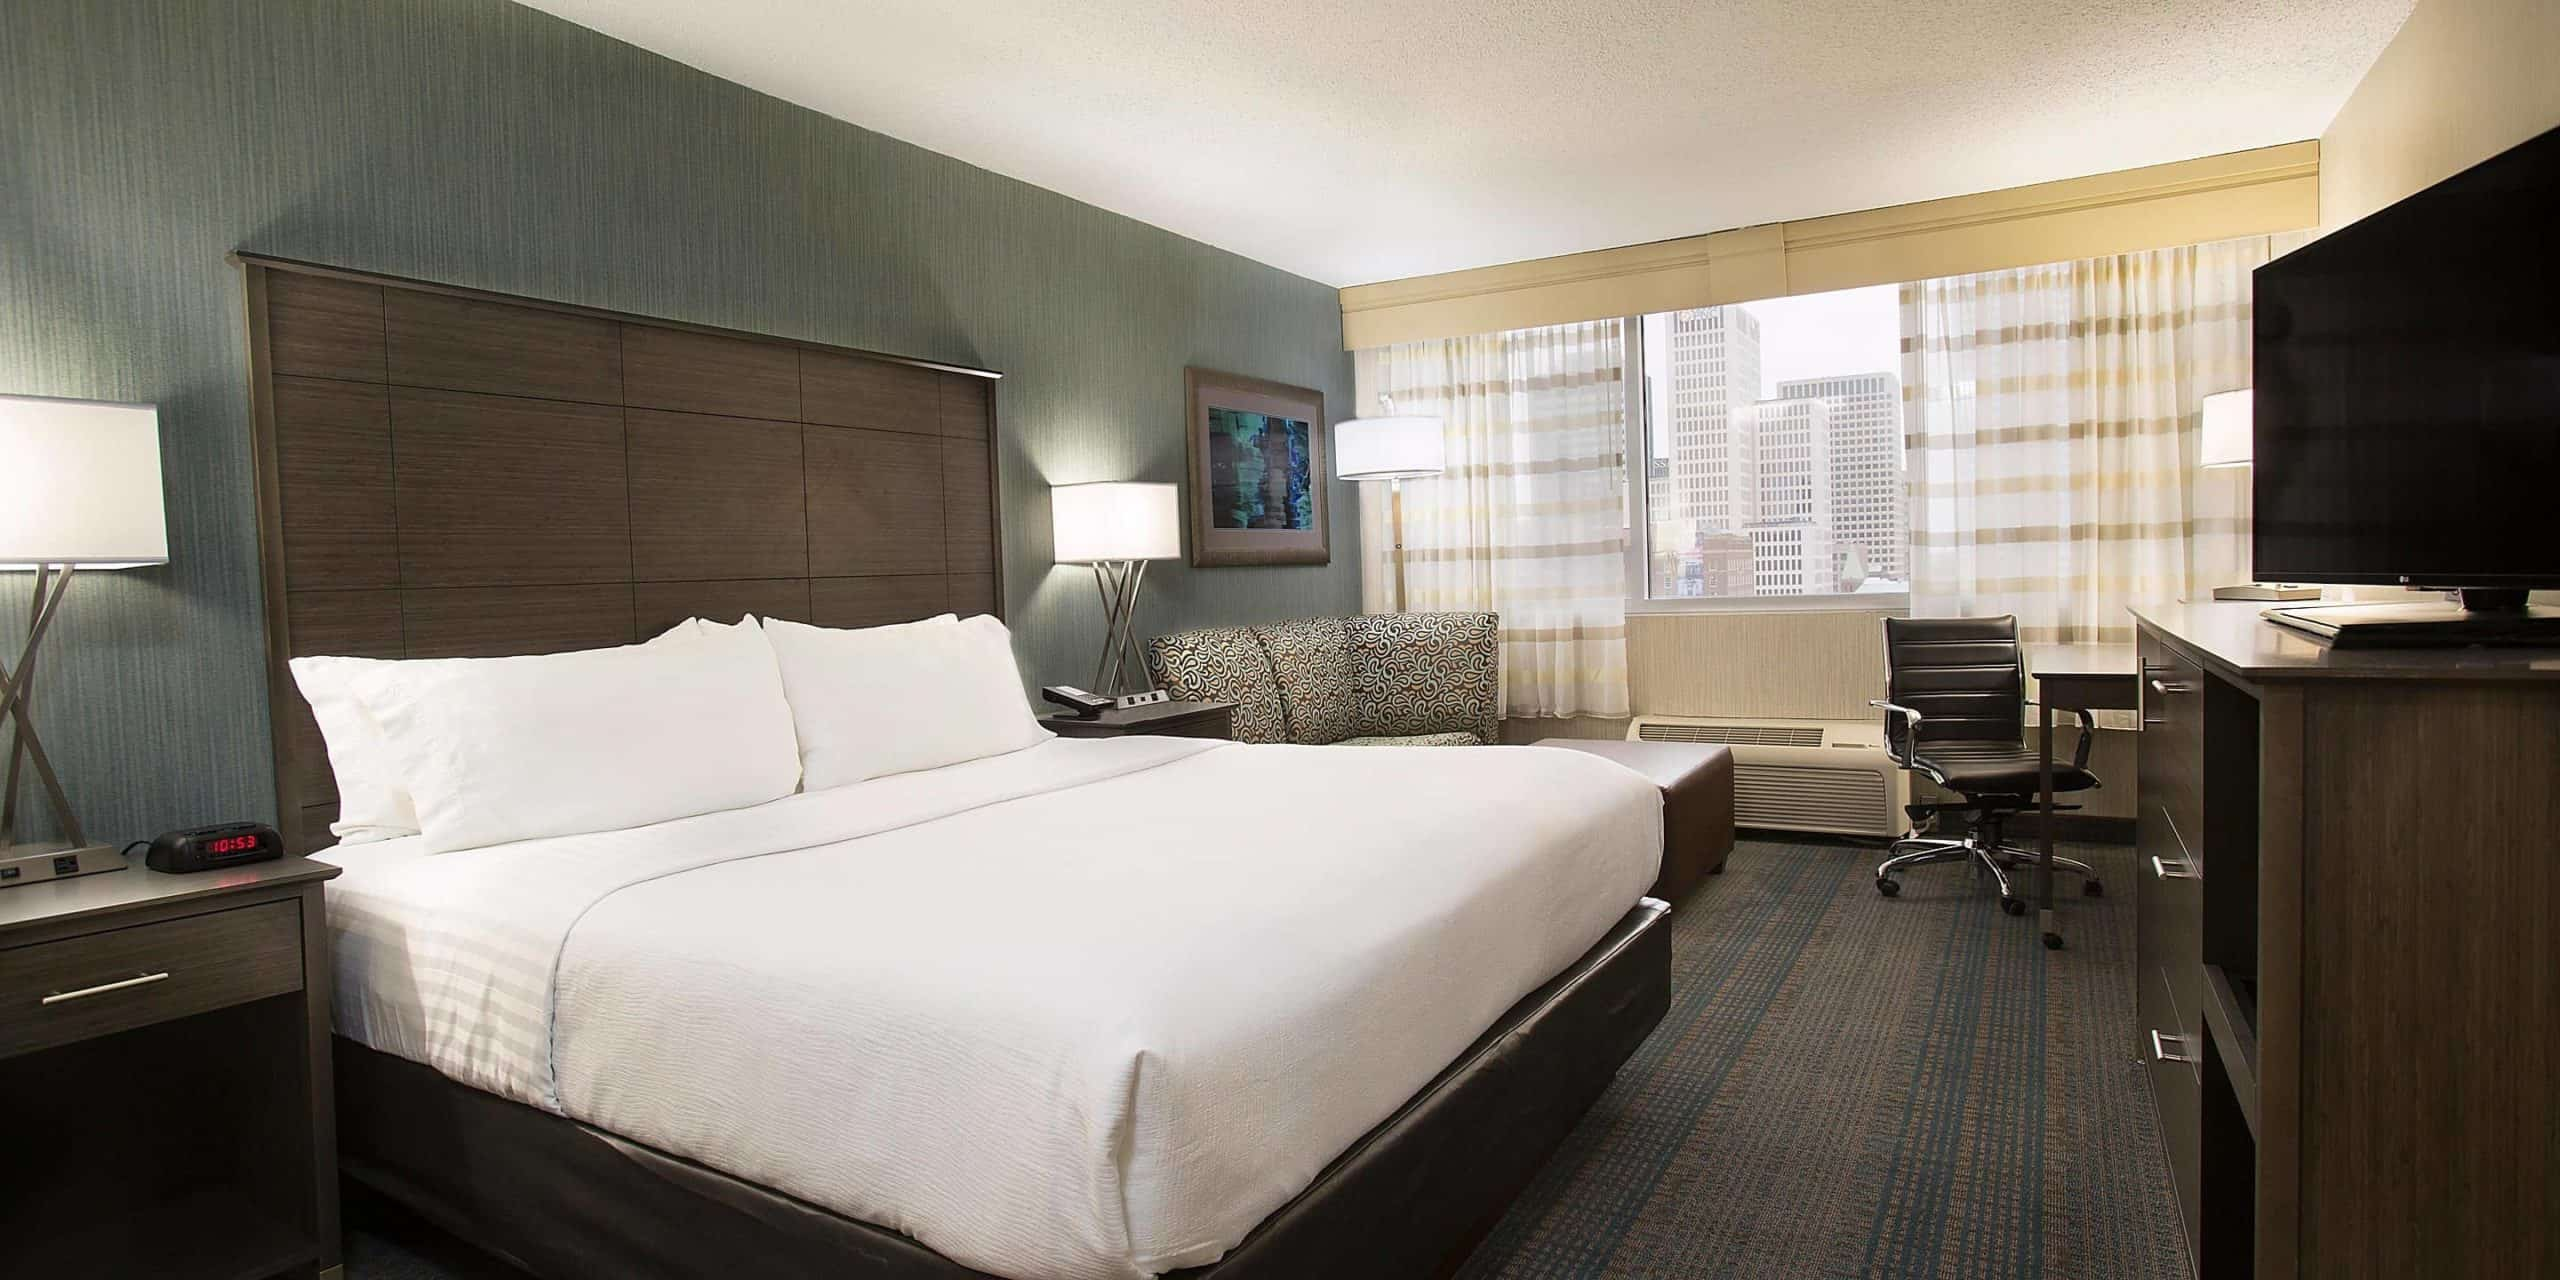 ihg hotels for family - Holiday Inn Columbus Downtown – Capitol Square